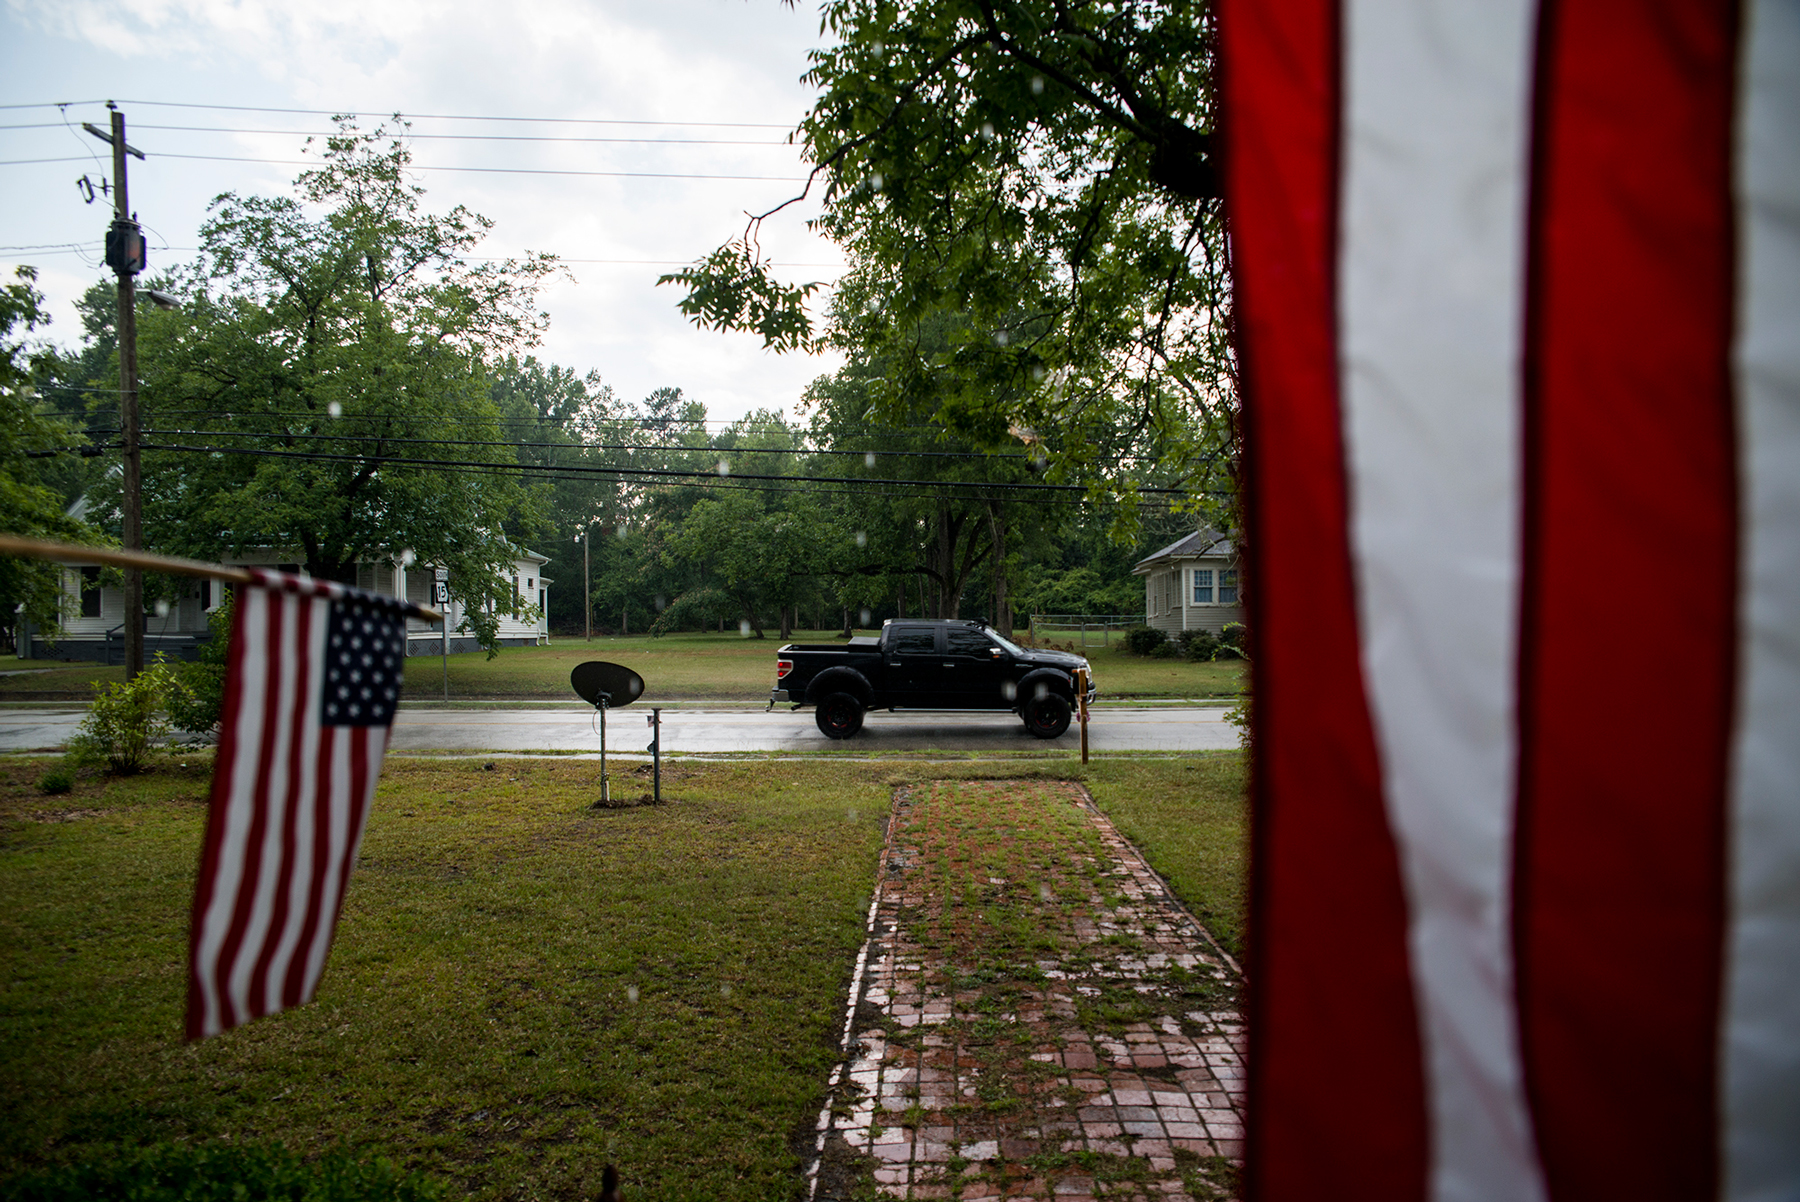 Residents in Sparta, Georgia, display American flags from their front porch on July 3. The Center for American Progress Action Fund gives Georgia low marks for ballot accessibility. (Roman Knertser/News21)